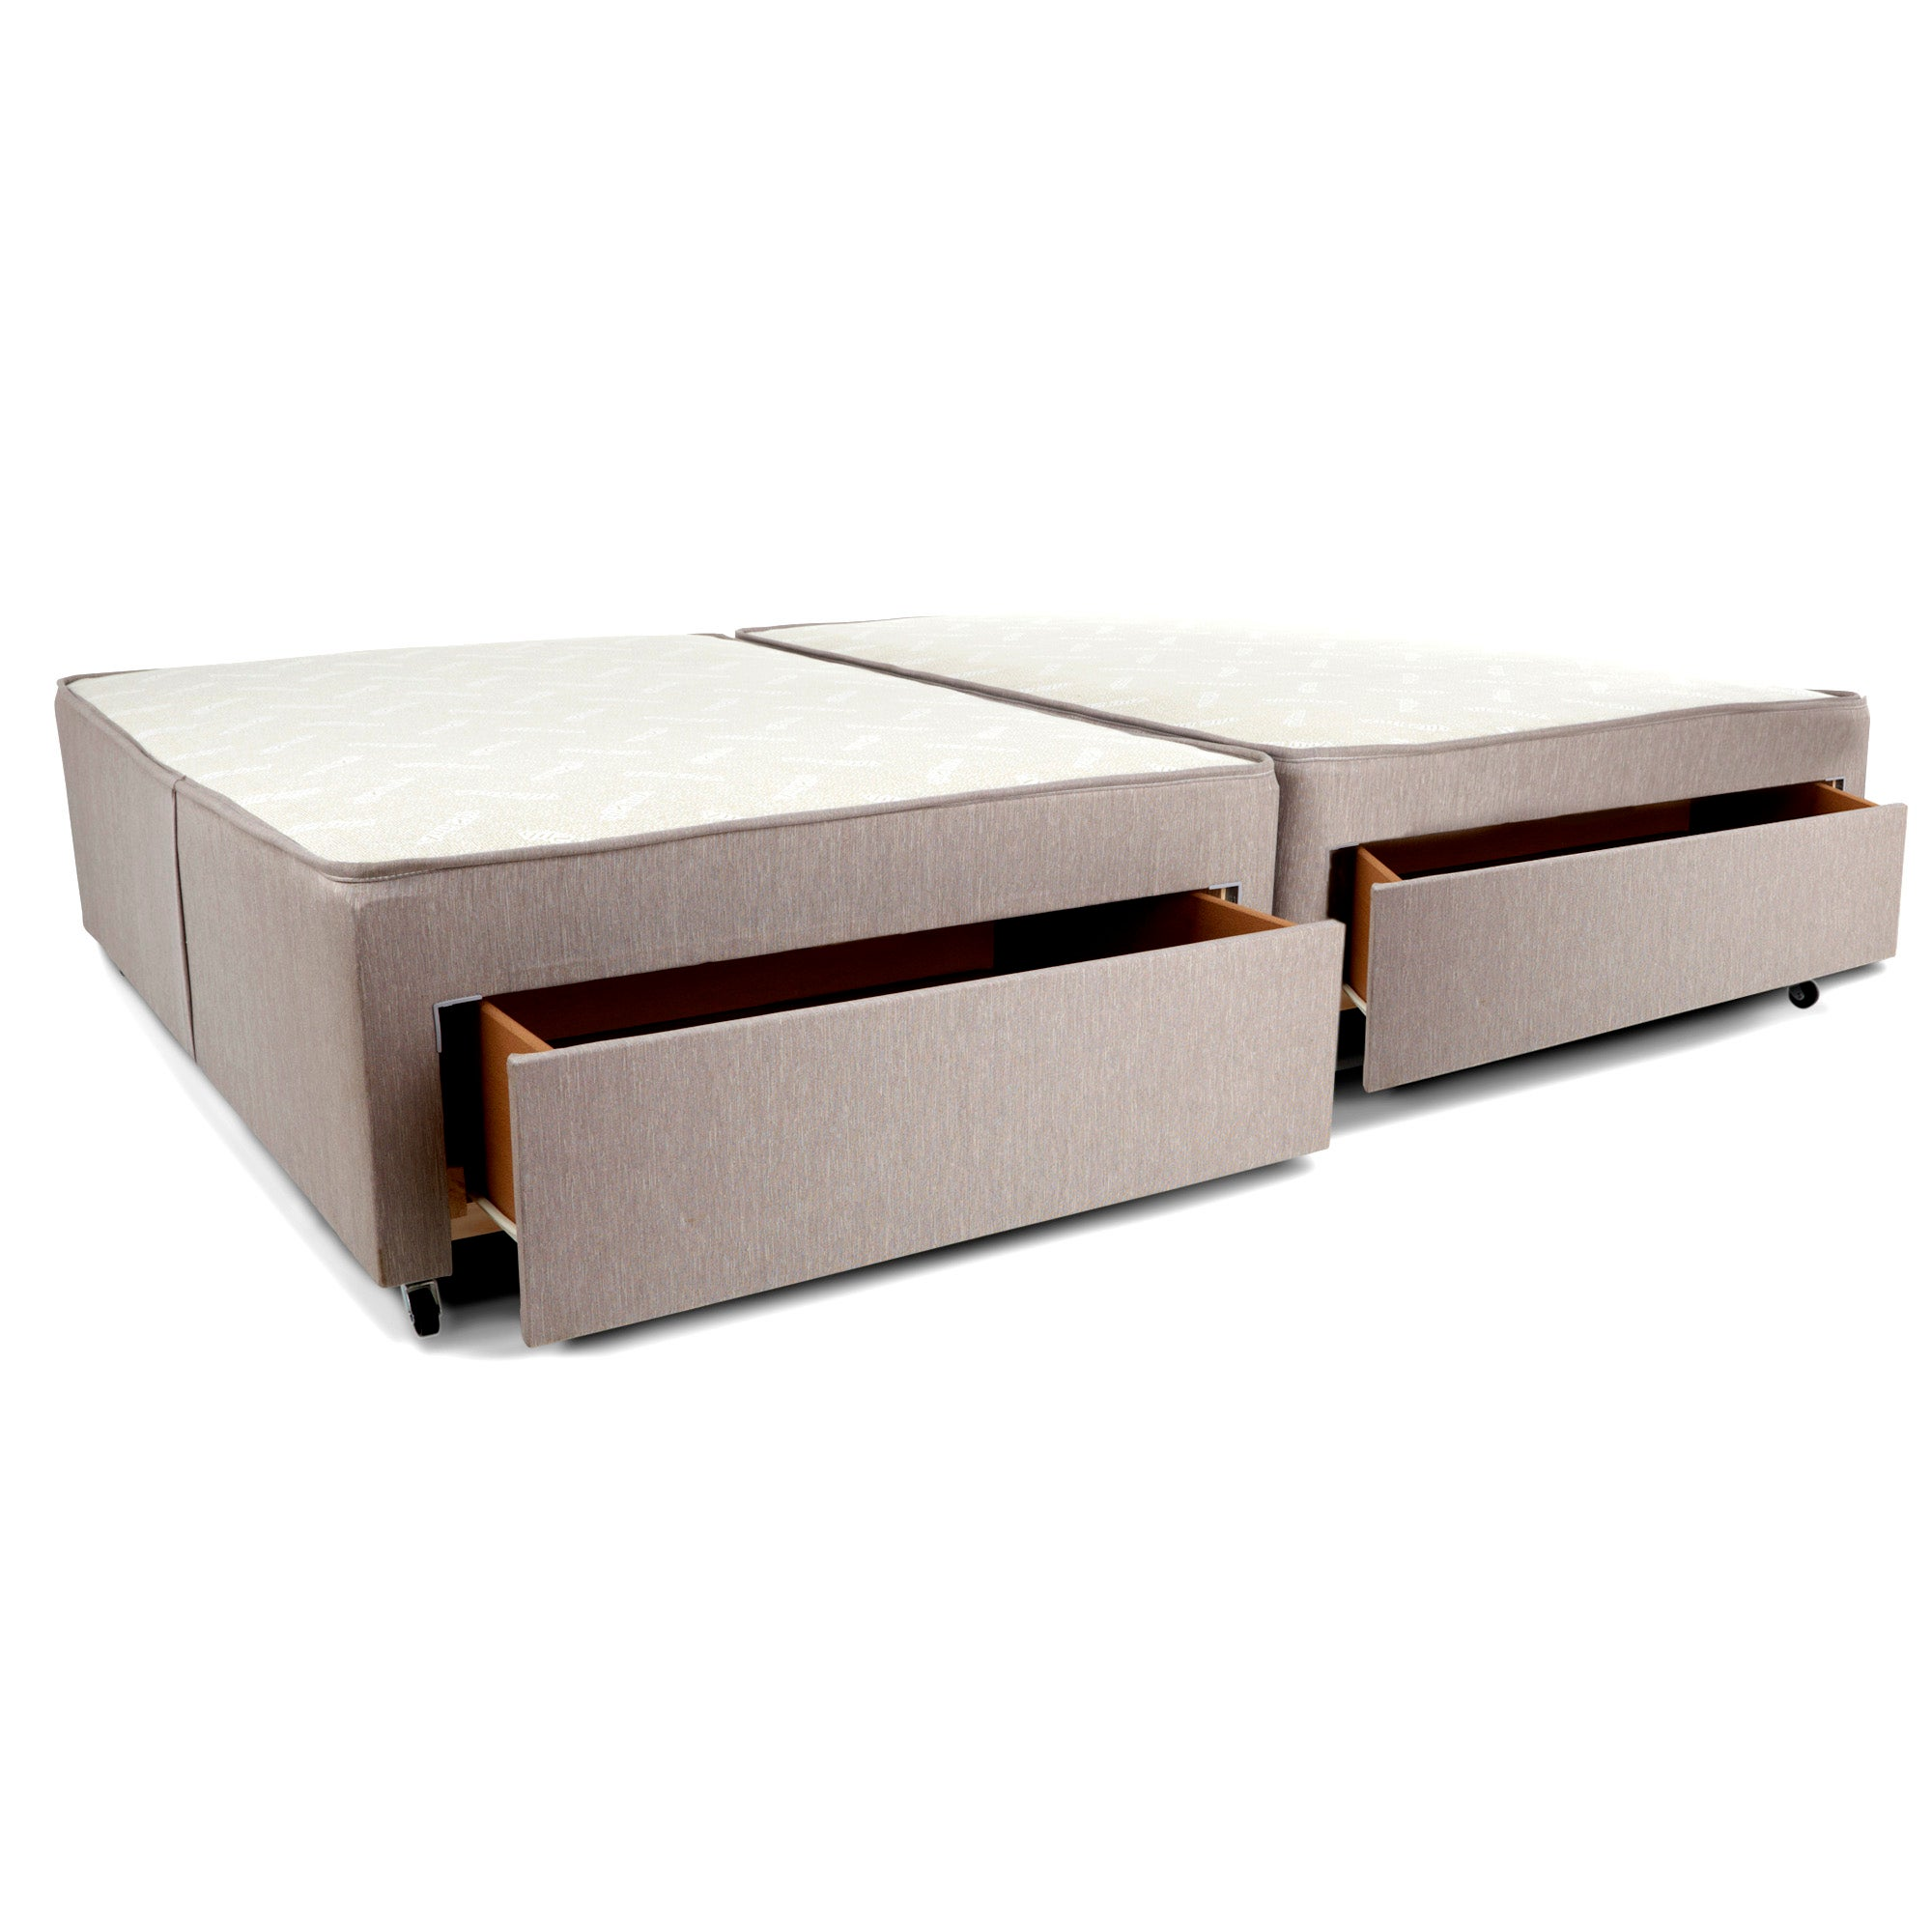 Padded Single Divan Base with 2 Drawers Right Side